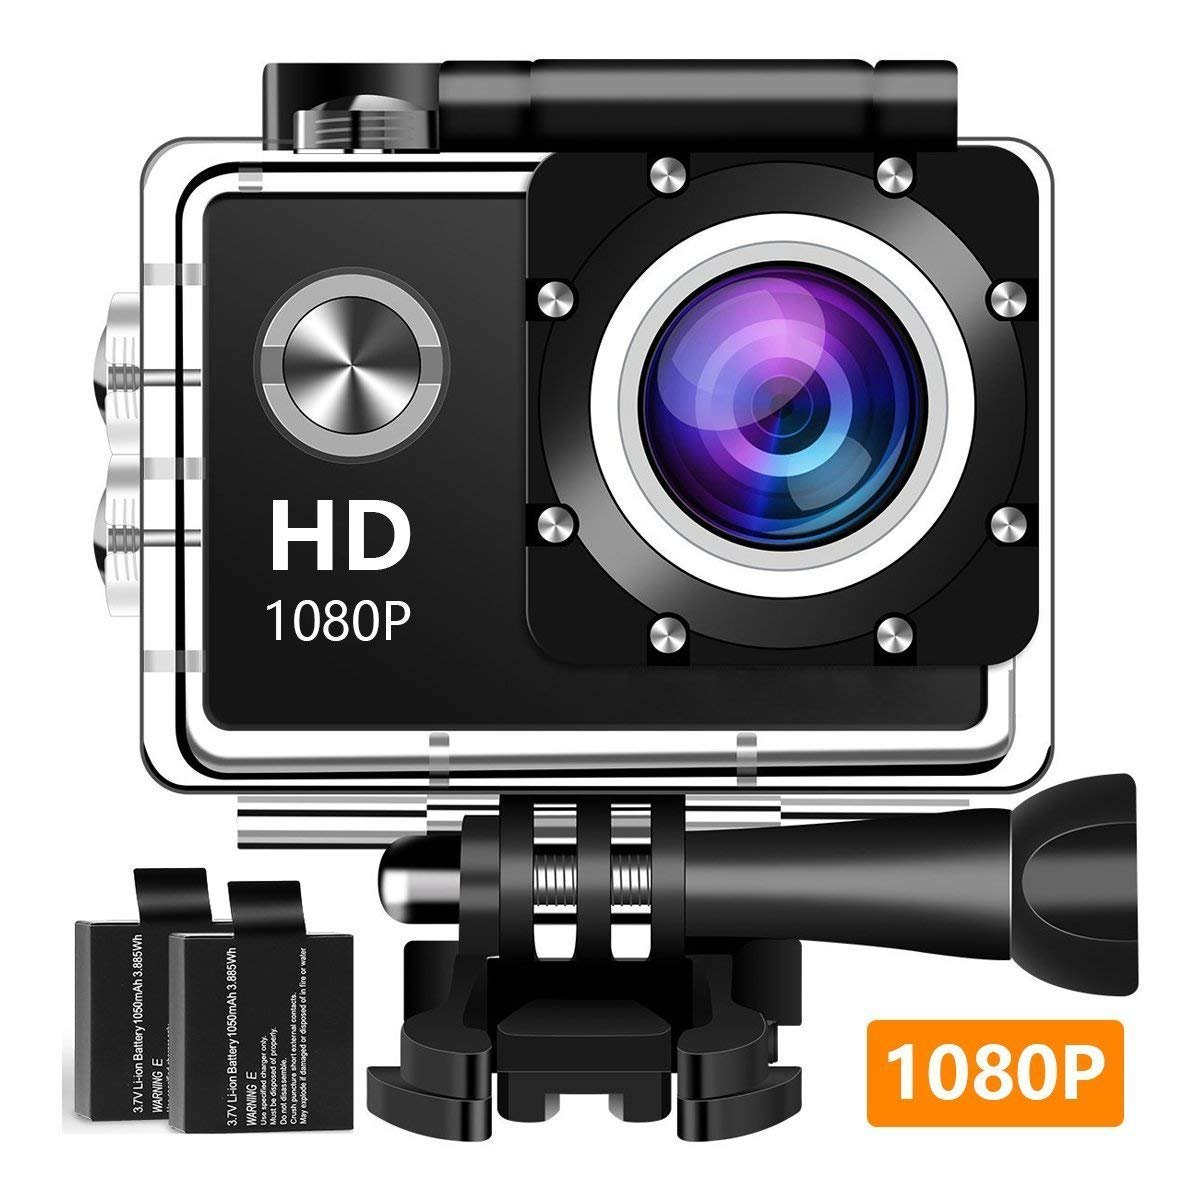 Dearam 1080P Action Camera, Ultra HD 30m Waterproof Camera, 140 Degree Wide Angle, 2 Rechargeable Batteries and Mounting Accessories Kit